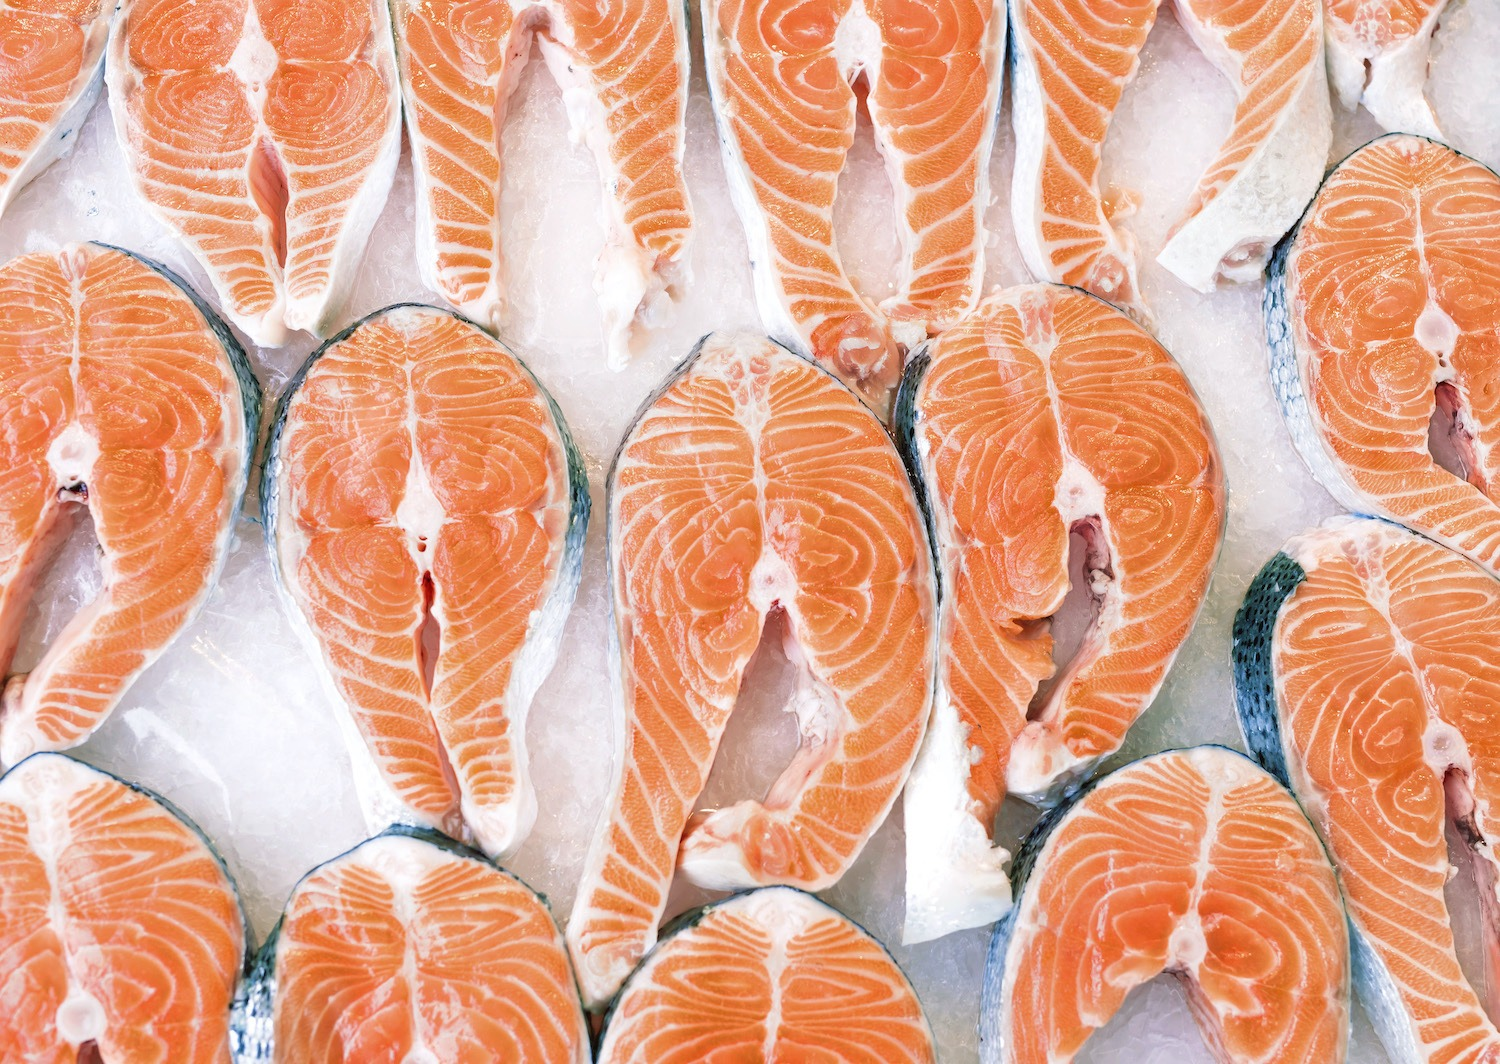 Rows of salmon fillets on ice. August 2020